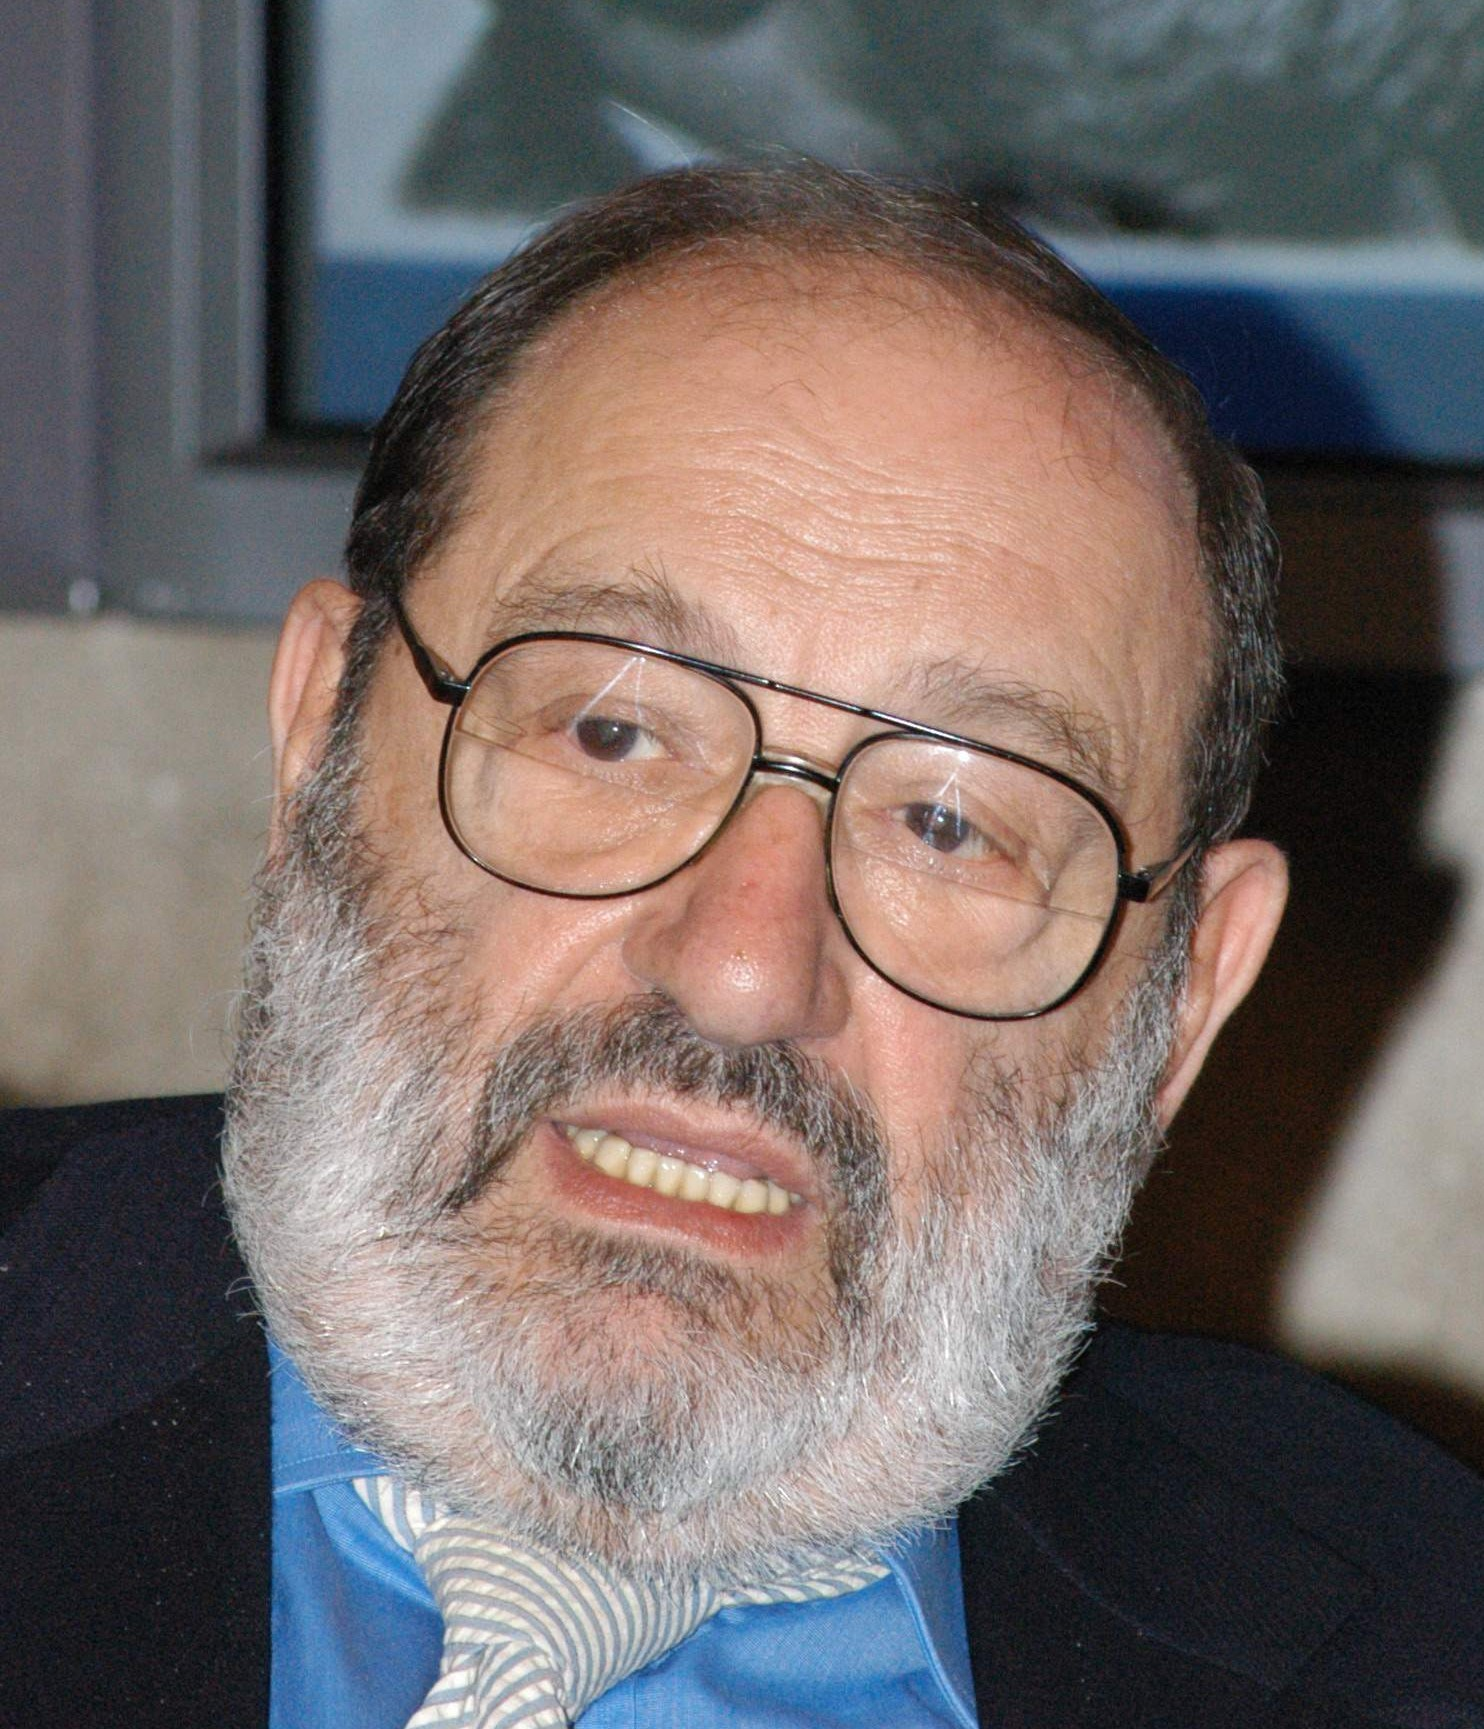 https://i1.wp.com/upload.wikimedia.org/wikipedia/commons/d/d2/Umberto_Eco_01.jpg